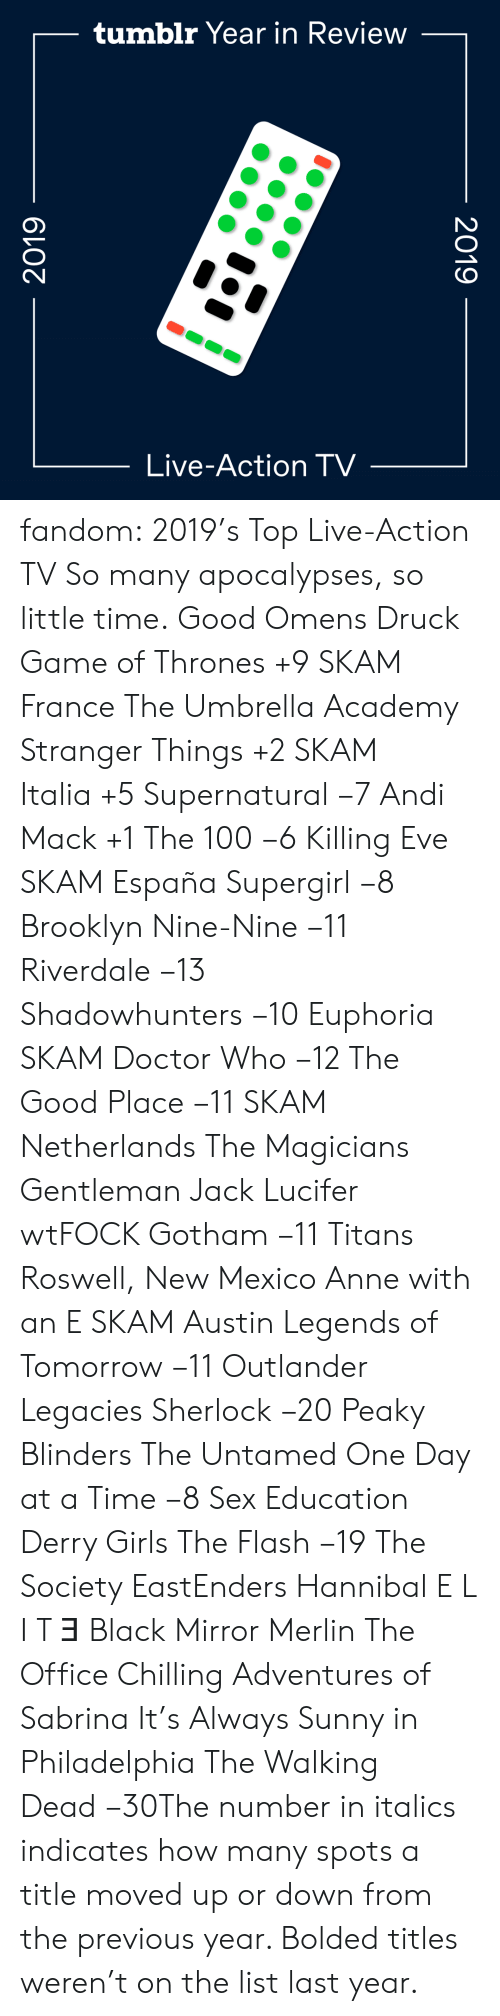 Game of Thrones: tumblr Year in Review  Live-Action TV-  2019  2019 fandom:  2019's Top Live-Action TV  So many apocalypses, so little time.  Good Omens  Druck  Game of Thrones +9  SKAM France  The Umbrella Academy  Stranger Things +2  SKAM Italia +5  Supernatural −7  Andi Mack +1  The 100 −6  Killing Eve   SKAM España  Supergirl −8  Brooklyn Nine-Nine −11  Riverdale −13  Shadowhunters −10  Euphoria  SKAM  Doctor Who −12  The Good Place −11  SKAM Netherlands  The Magicians  Gentleman Jack  Lucifer  wtFOCK  Gotham −11  Titans  Roswell, New Mexico  Anne with an E  SKAM Austin  Legends of Tomorrow −11  Outlander  Legacies  Sherlock −20  Peaky Blinders  The Untamed  One Day at a Time −8  Sex Education  Derry Girls  The Flash −19  The Society  EastEnders  Hannibal  E L I T Ǝ  Black Mirror  Merlin  The Office  Chilling Adventures of Sabrina  It's Always Sunny in Philadelphia The Walking Dead −30The number in italics indicates how many spots a title moved up or down from the previous year. Bolded titles weren't on the list last year.